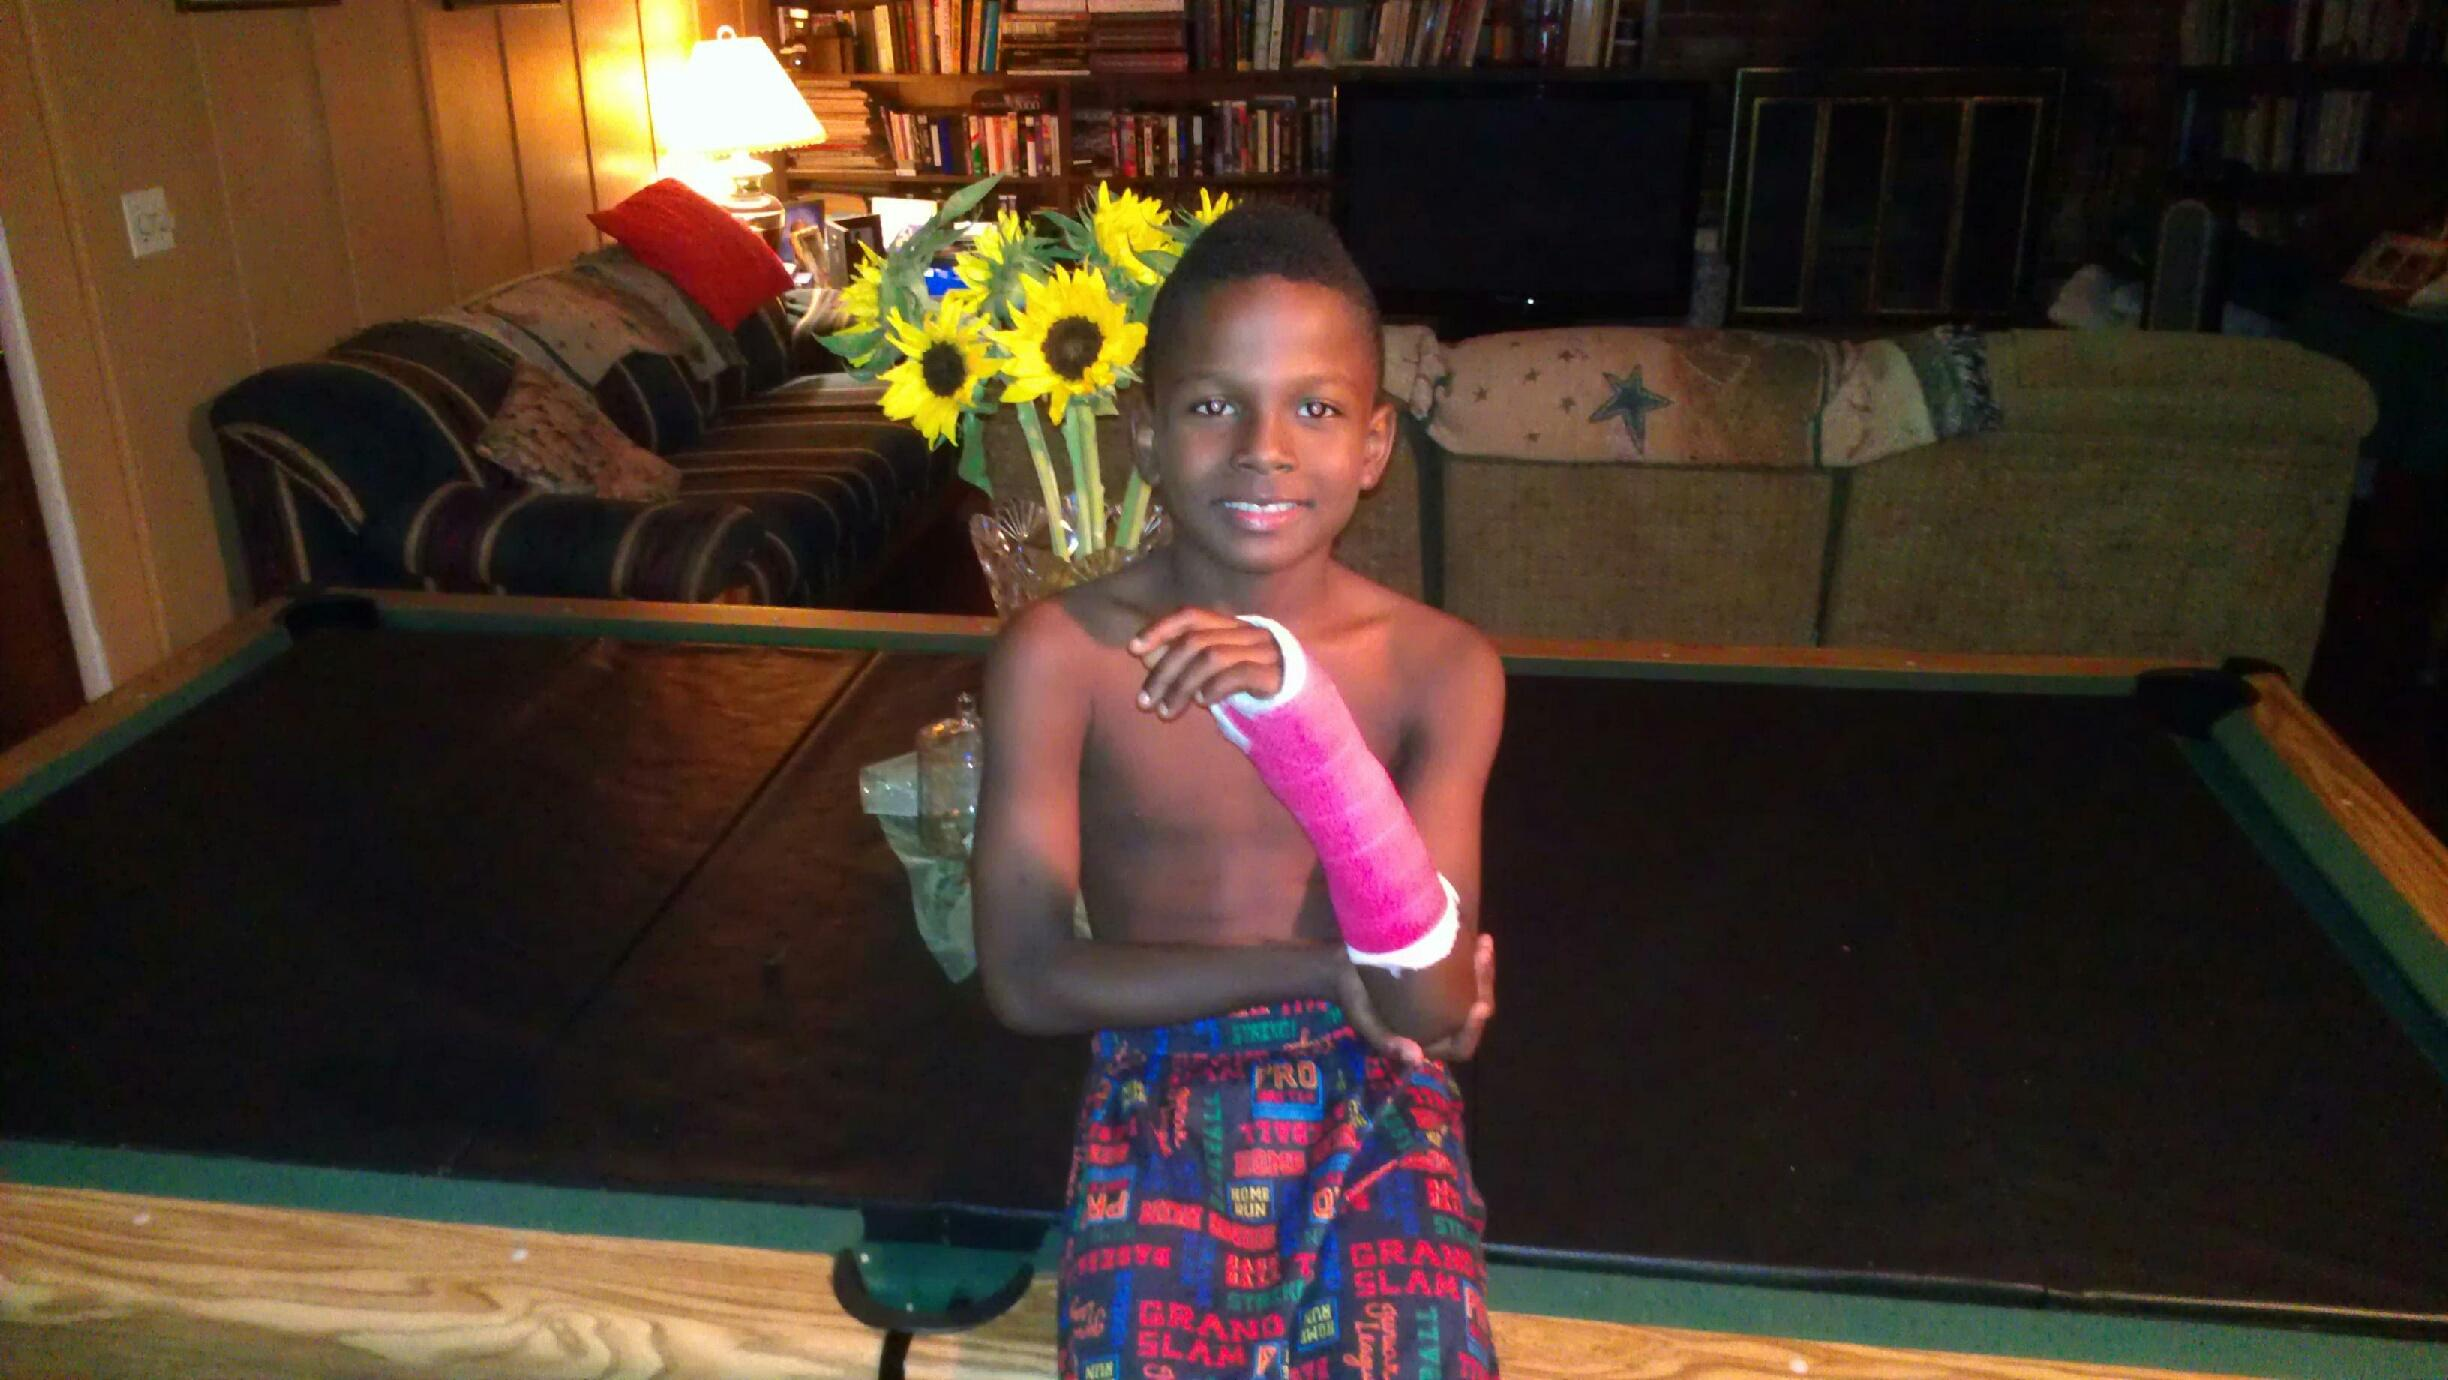 Kalonji, age 8 in his red cast posing in his grandparents' living-room in Randallstown, Maryland